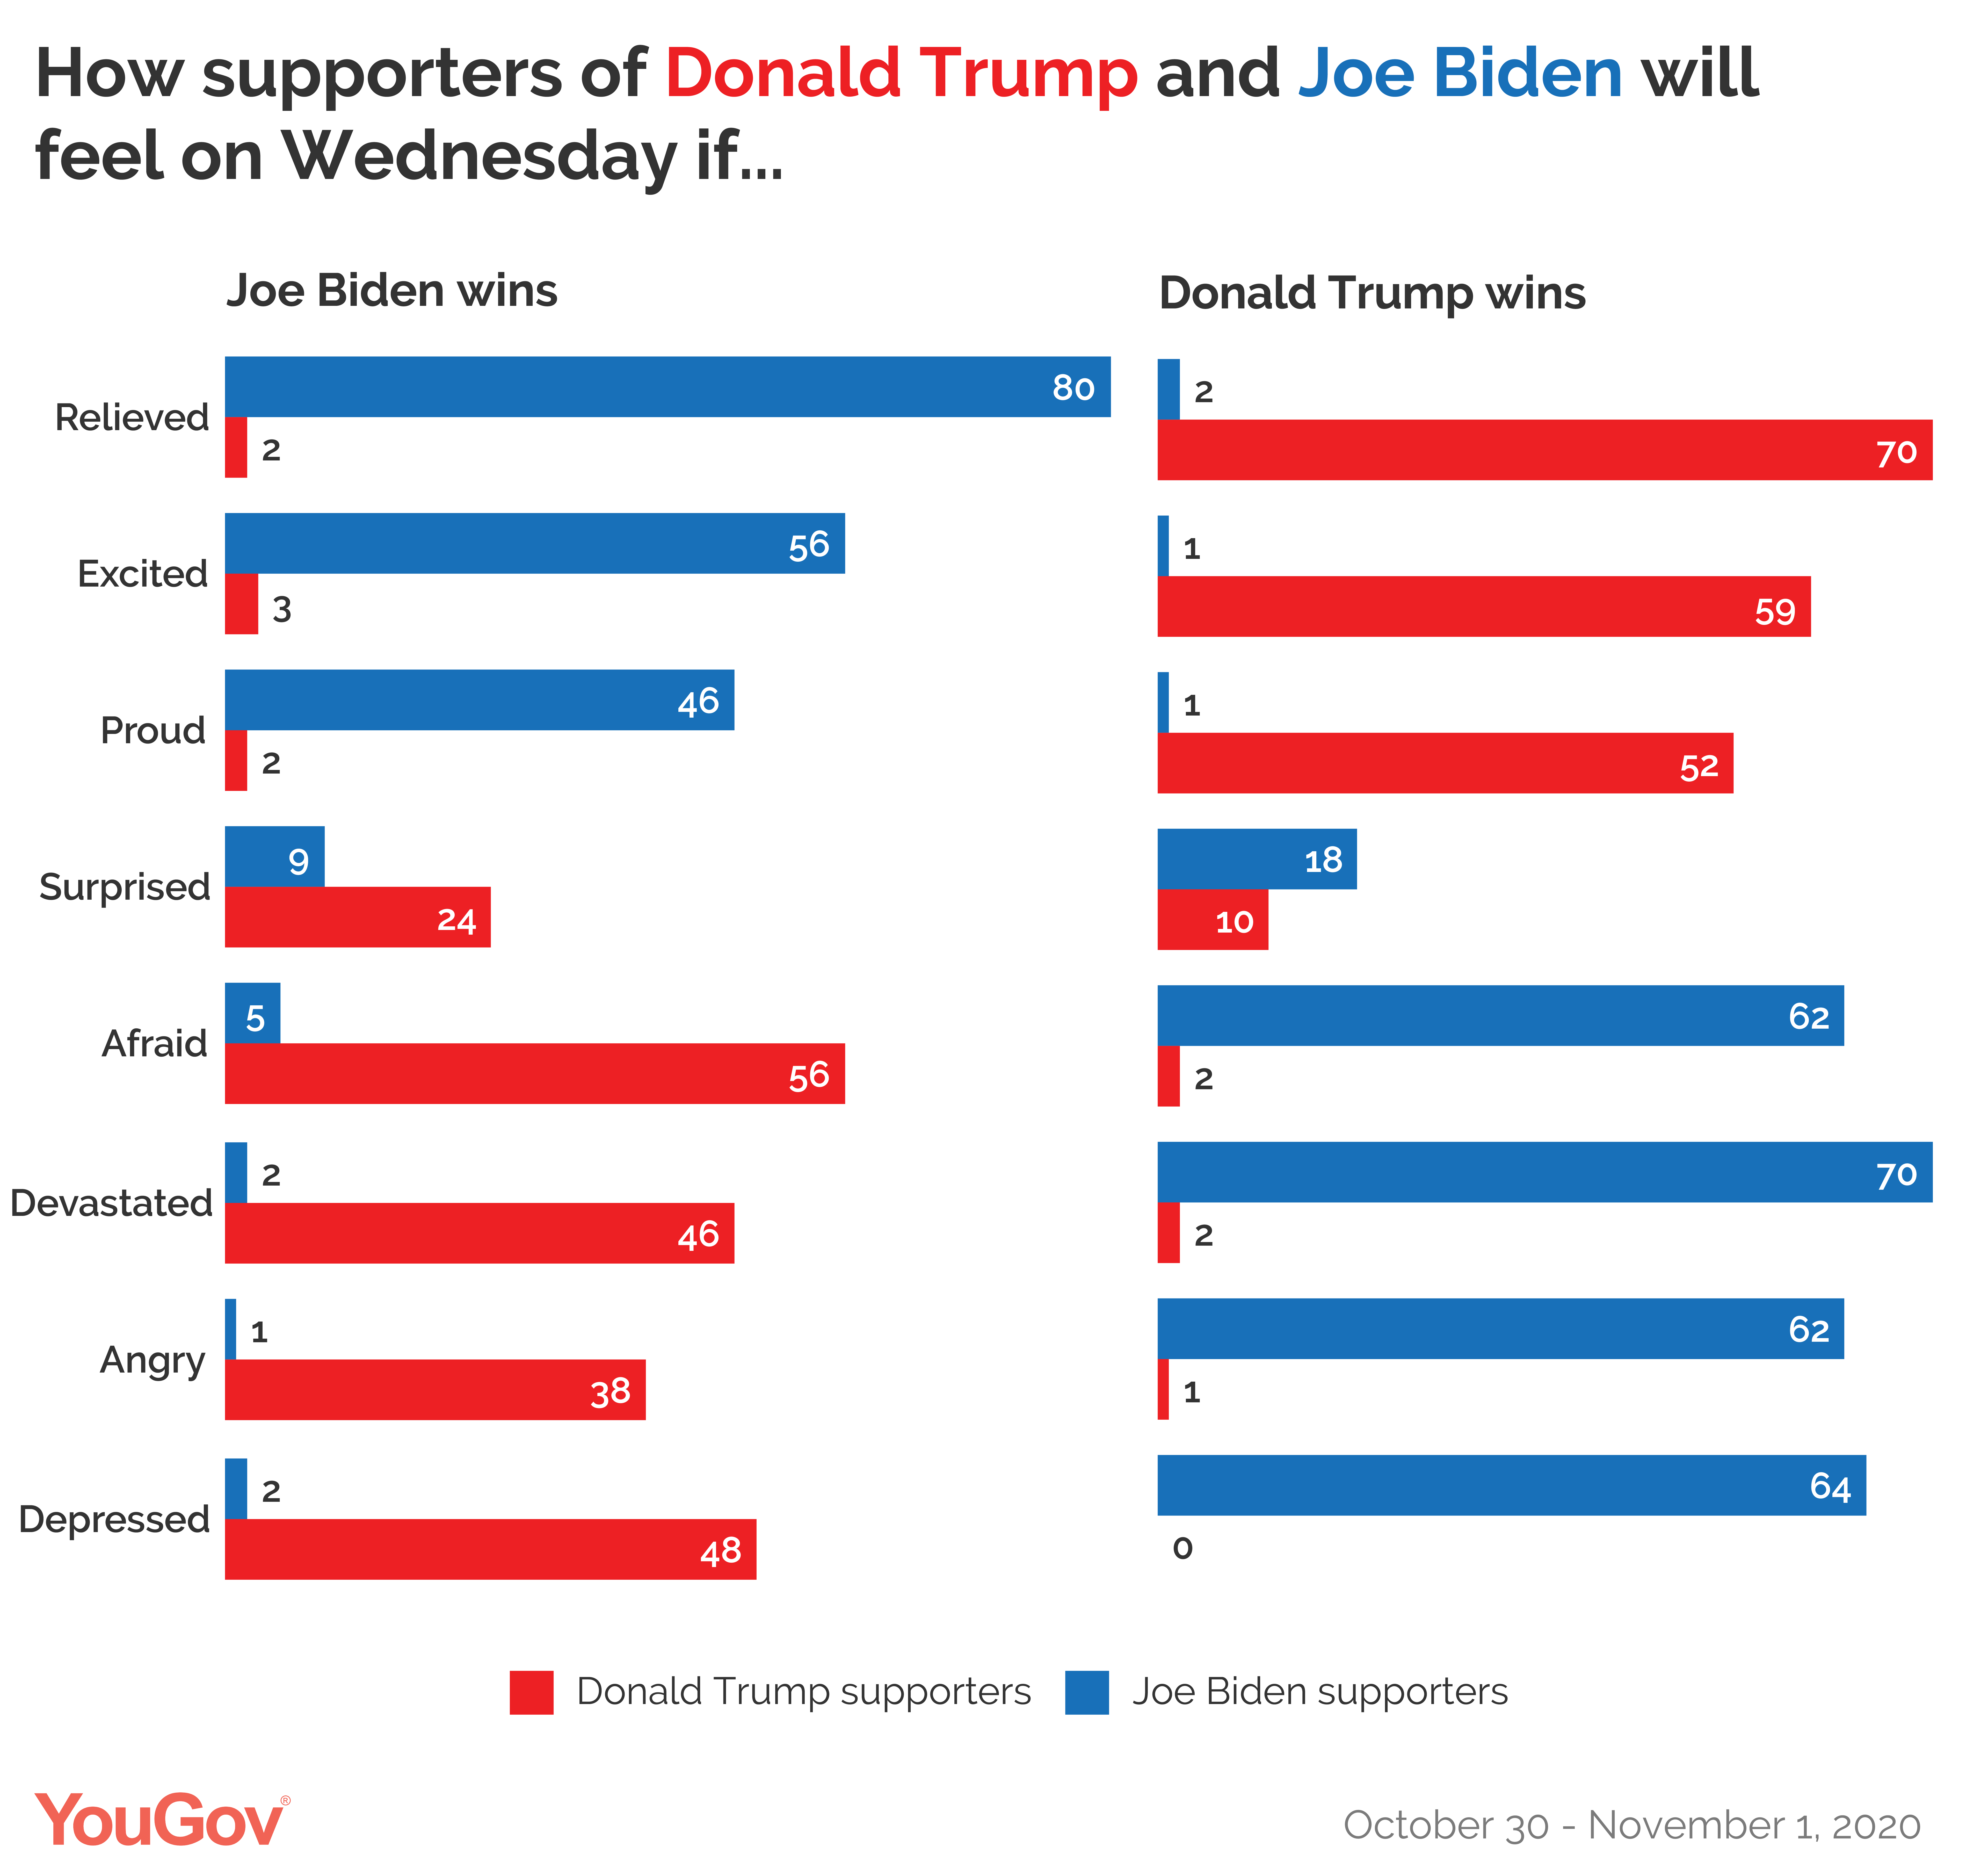 How supporters of Donald Trump and Joe Biden will feel if their candidate wins or loses